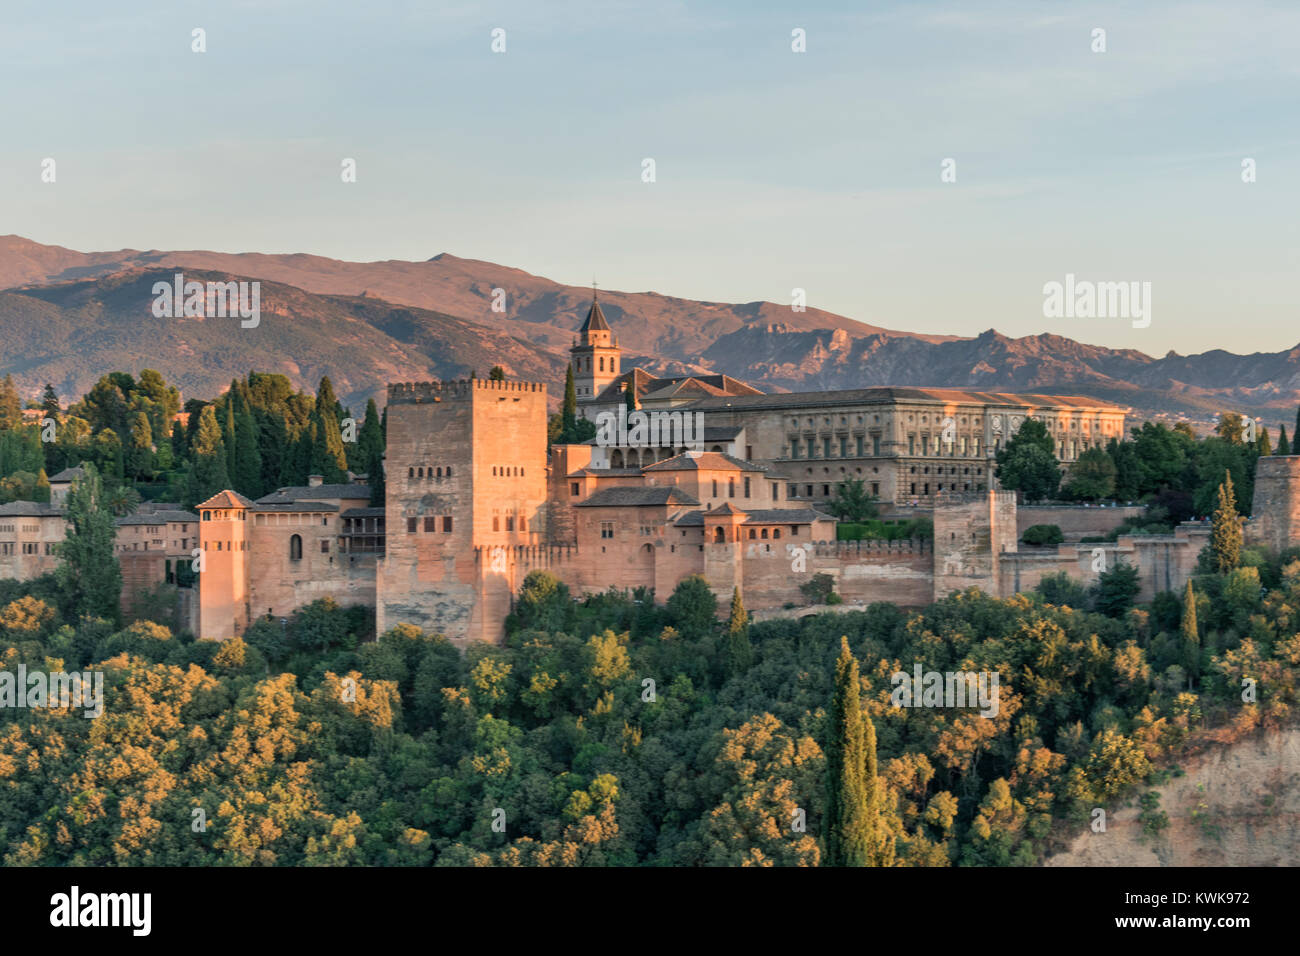 View of the Alhambra from the Mirador de San Nicolas, Granada, Spain - Stock Image